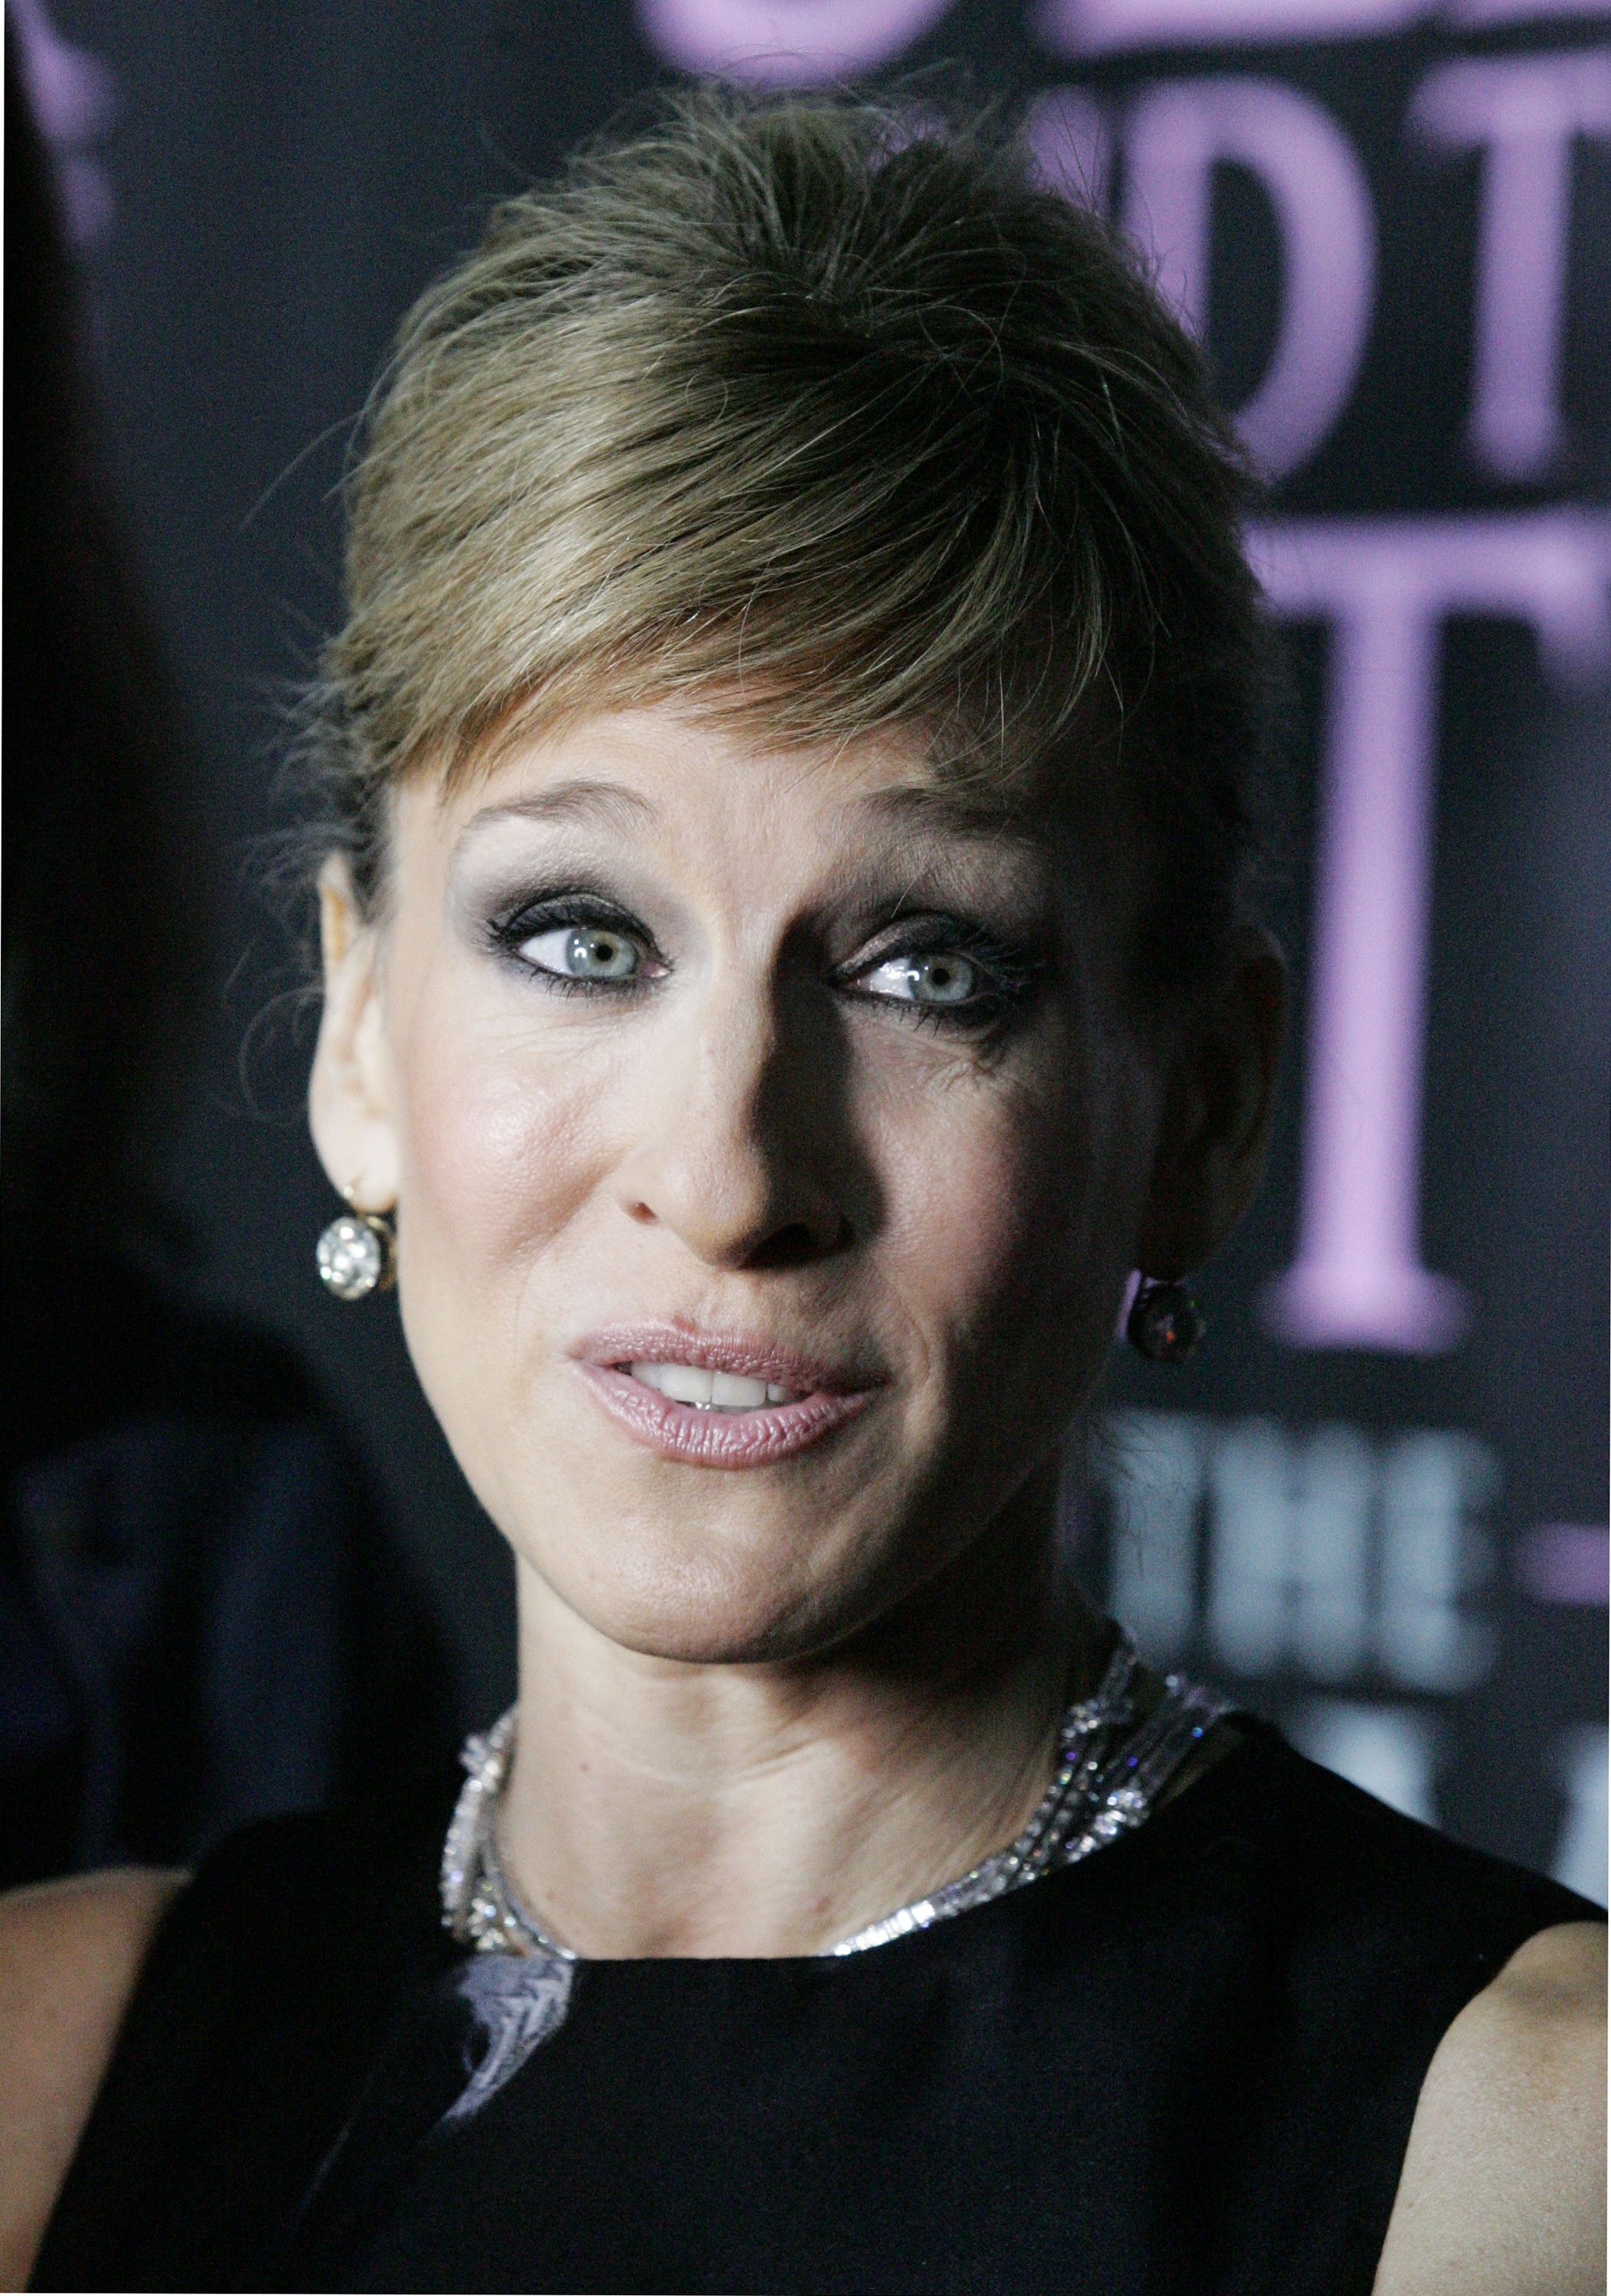 04243_Celebutopia-Sarah_Jessica_Parker-Sex_and_the_City_The_Movie_DVD_launch_in_New_York_City-10_122_1183lo.jpg